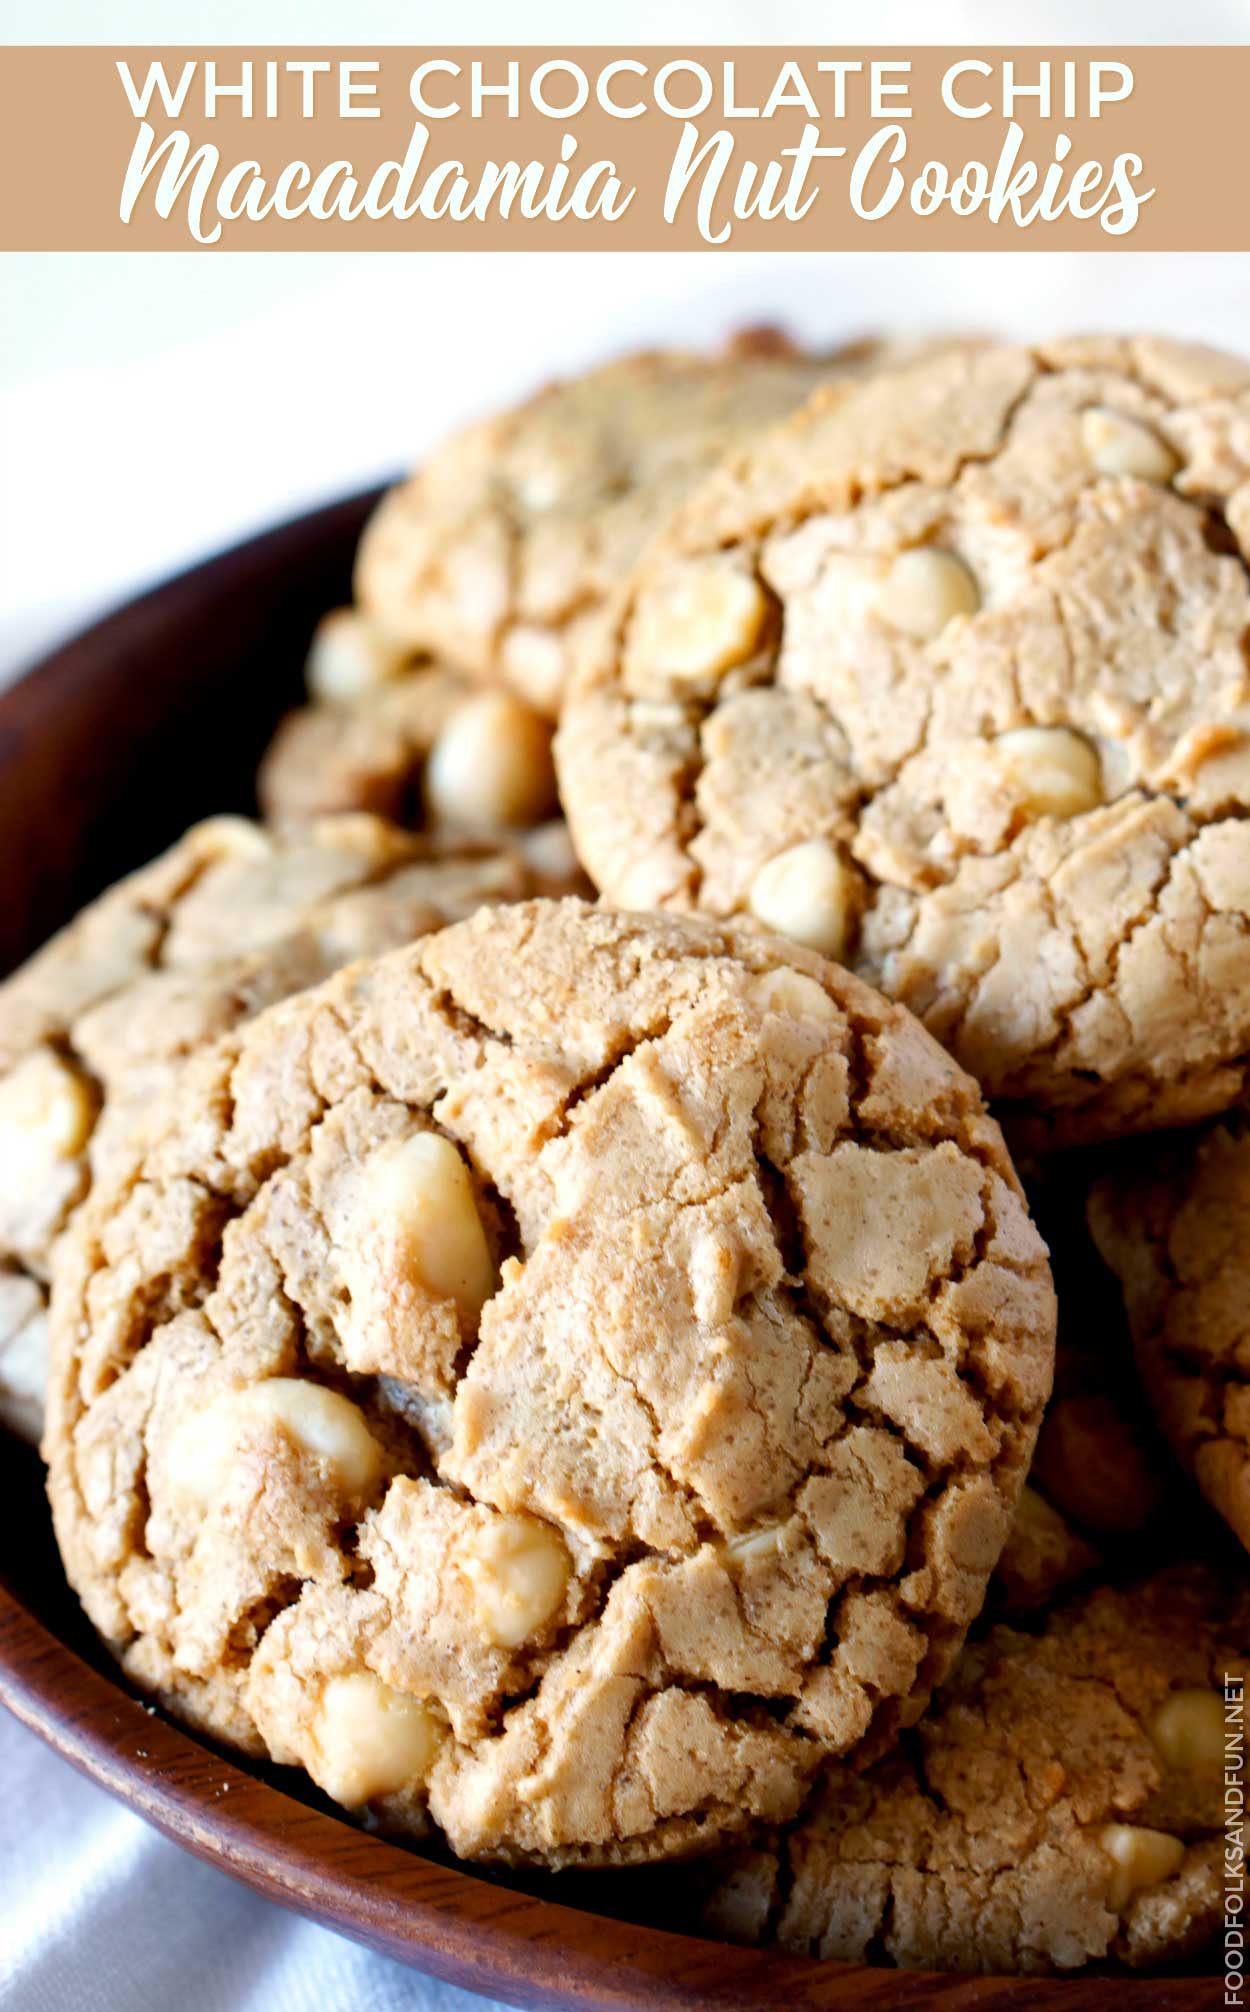 Best White Chocolate Macadamia Nut Cookies recipe!